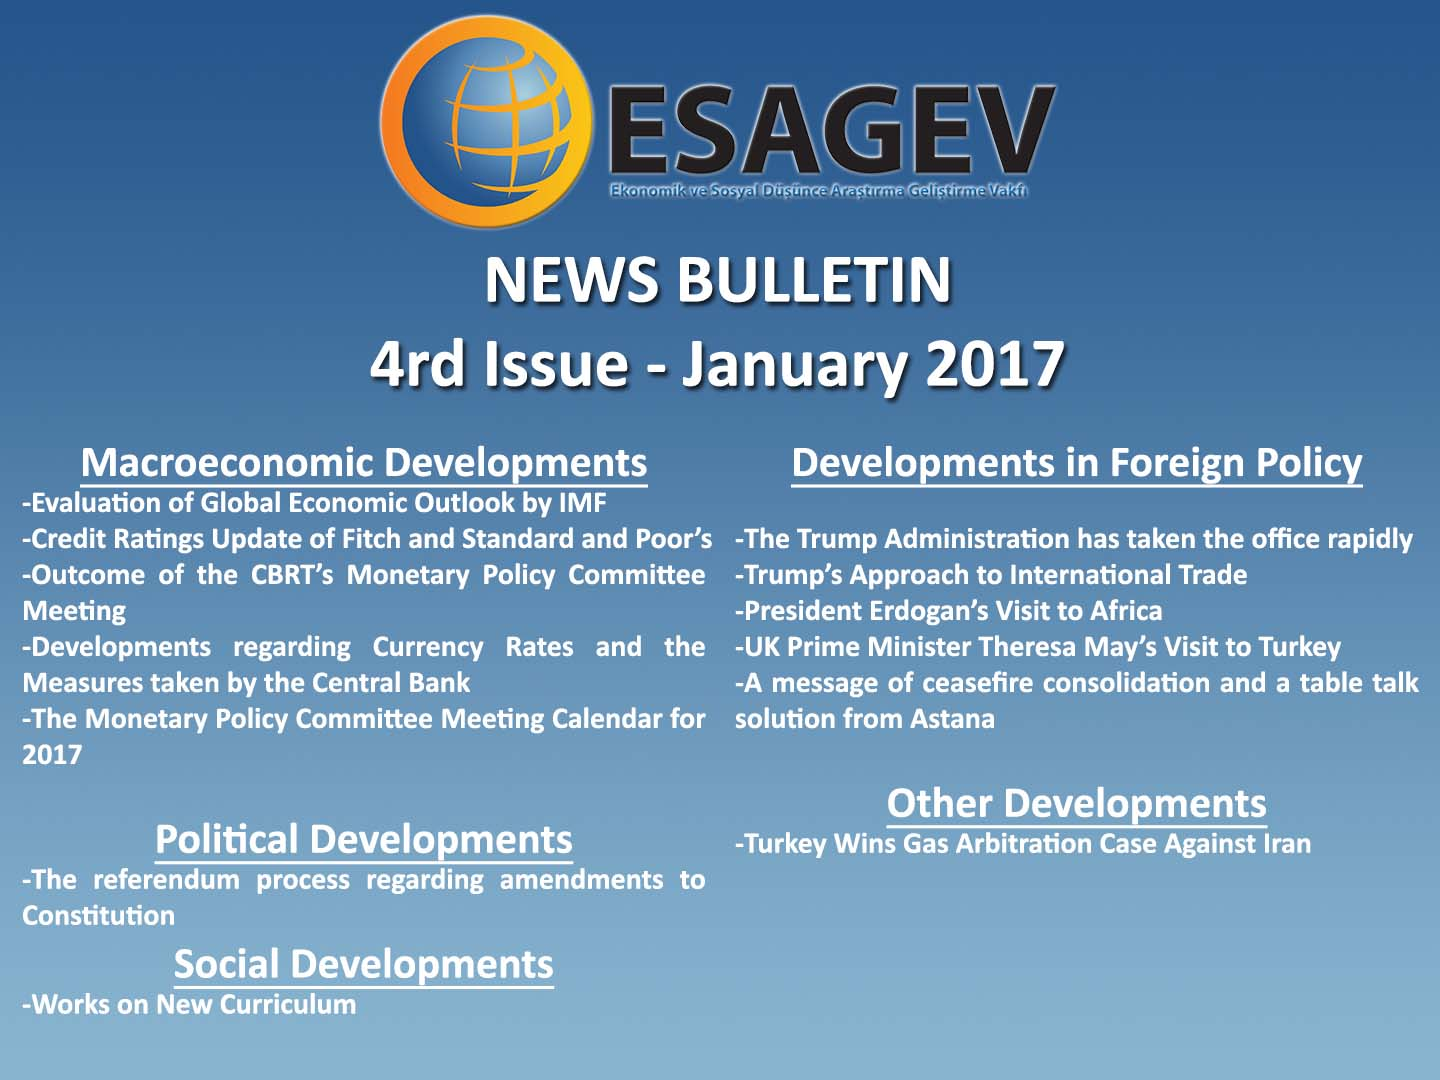 News Bulletin – 4rd Issue – January 2017 (II)